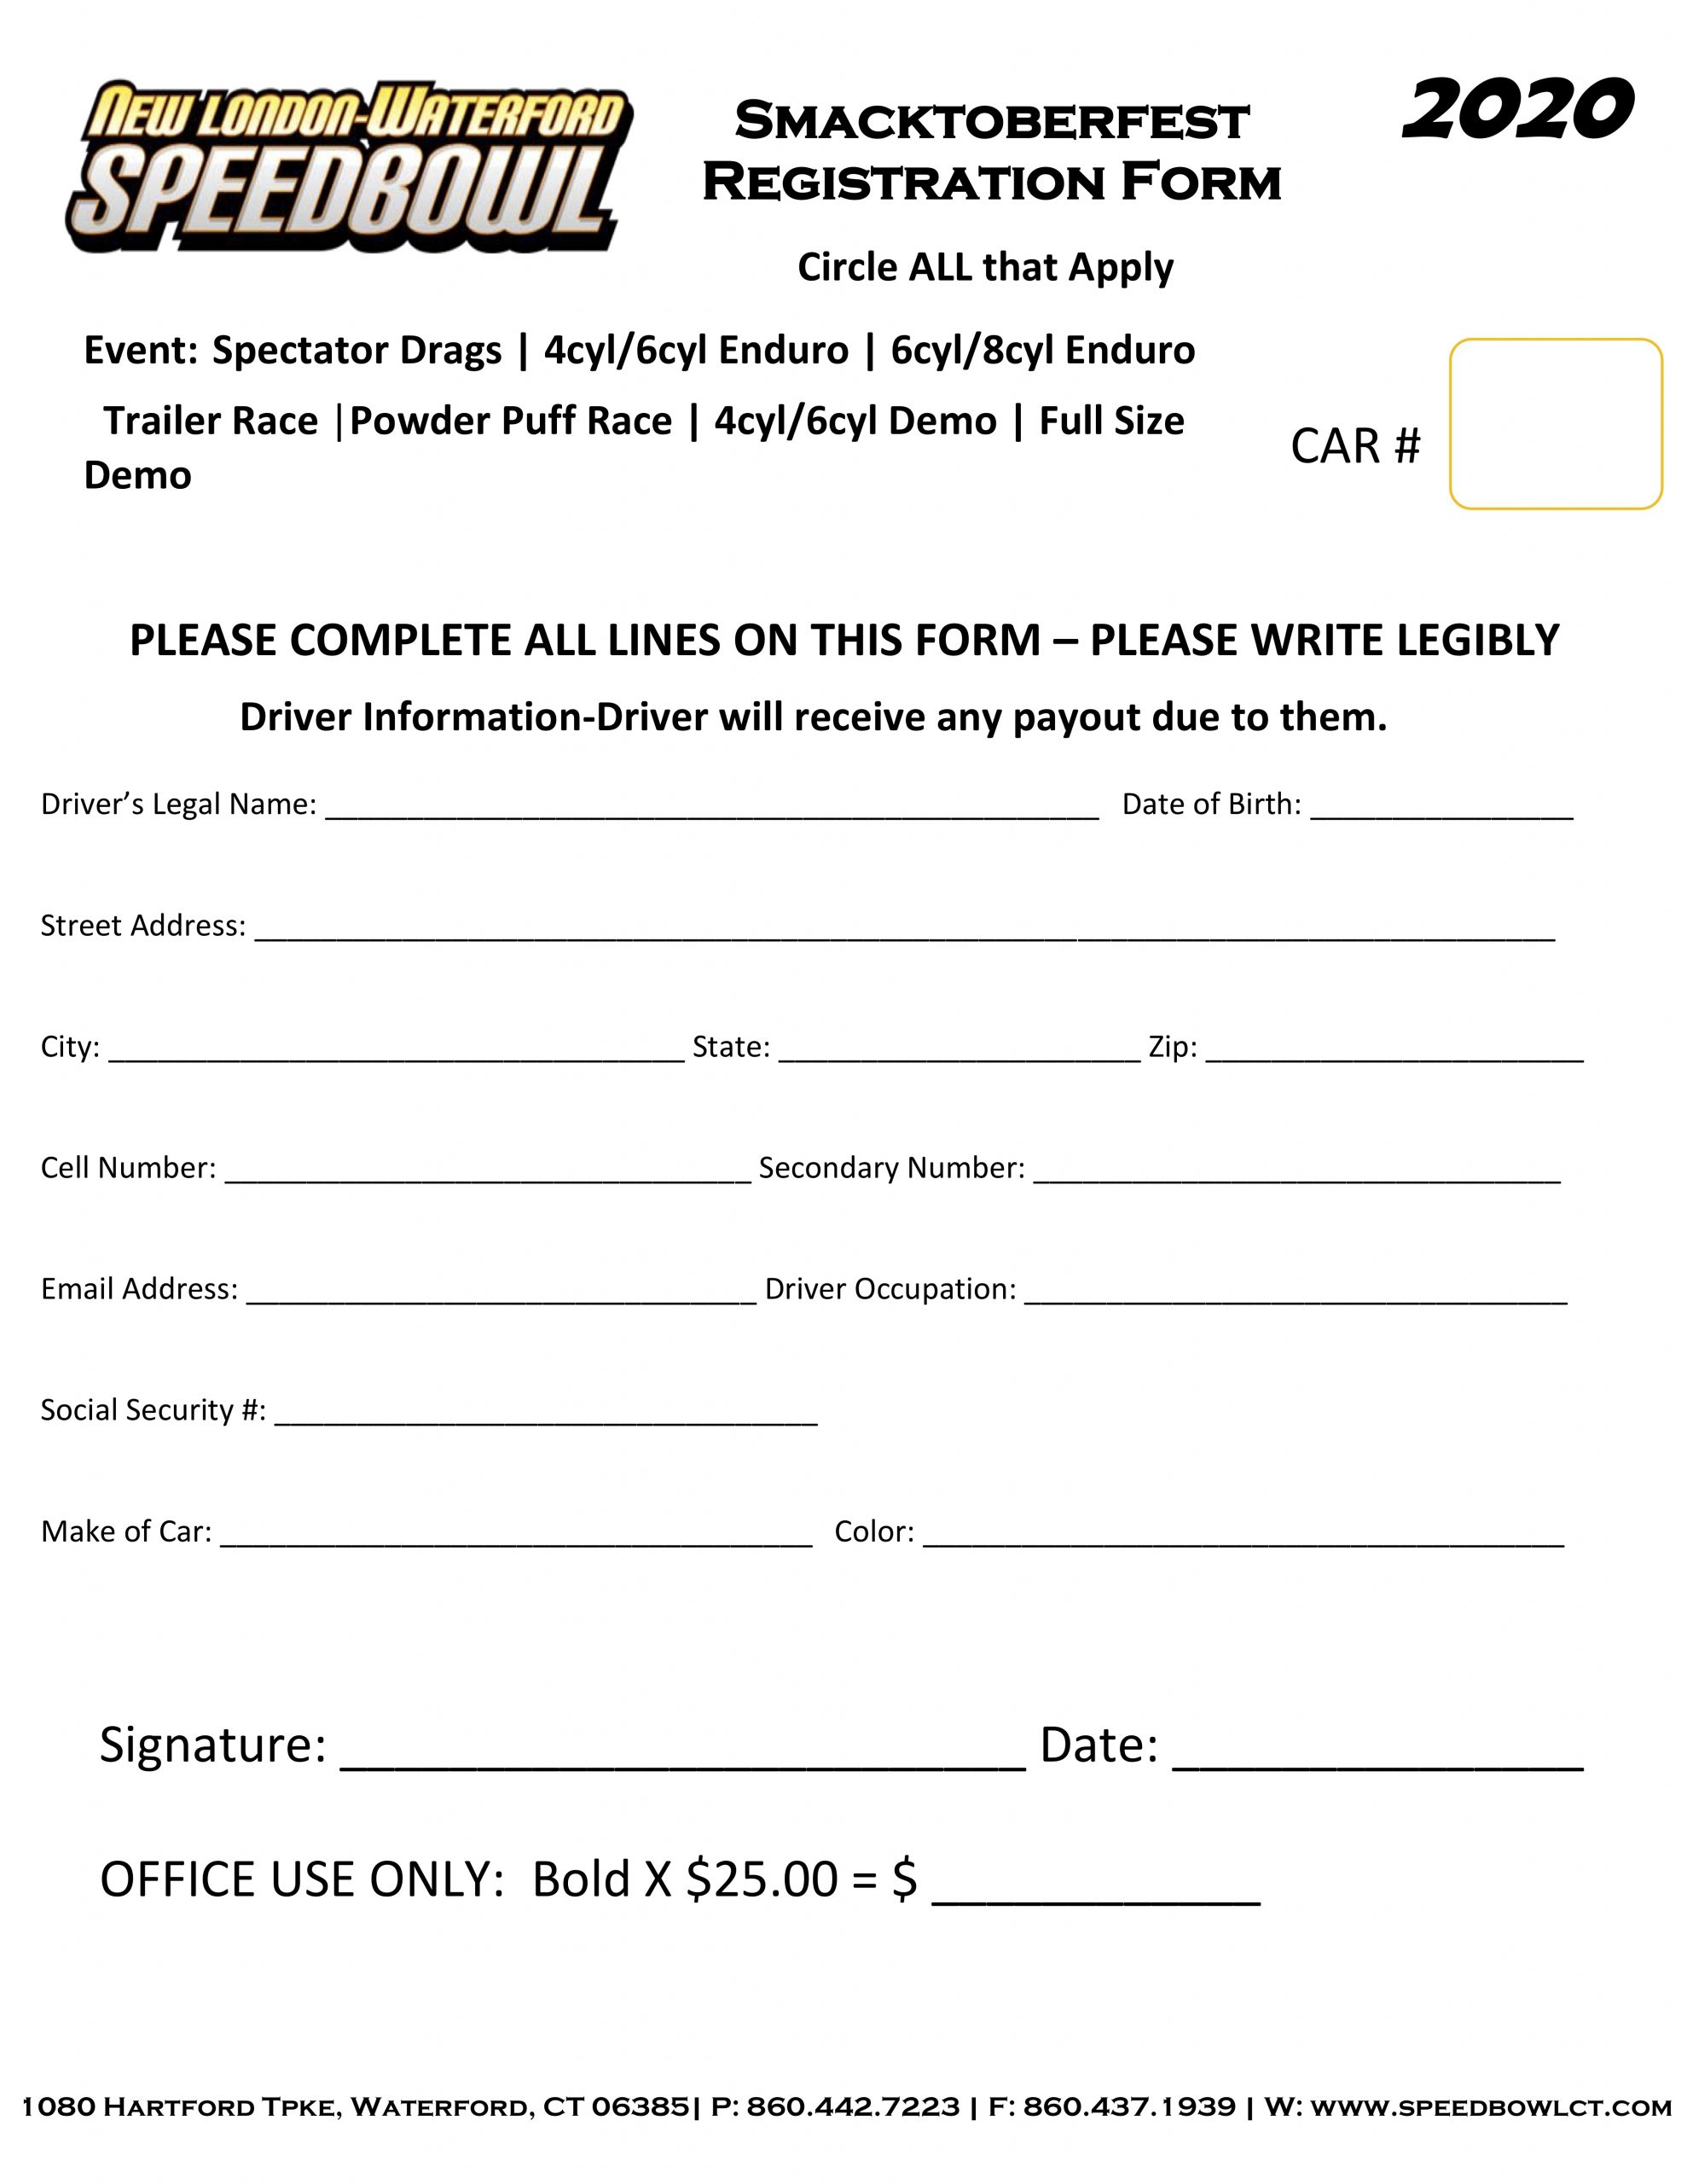 2020 Smacktoberfest Registration Form